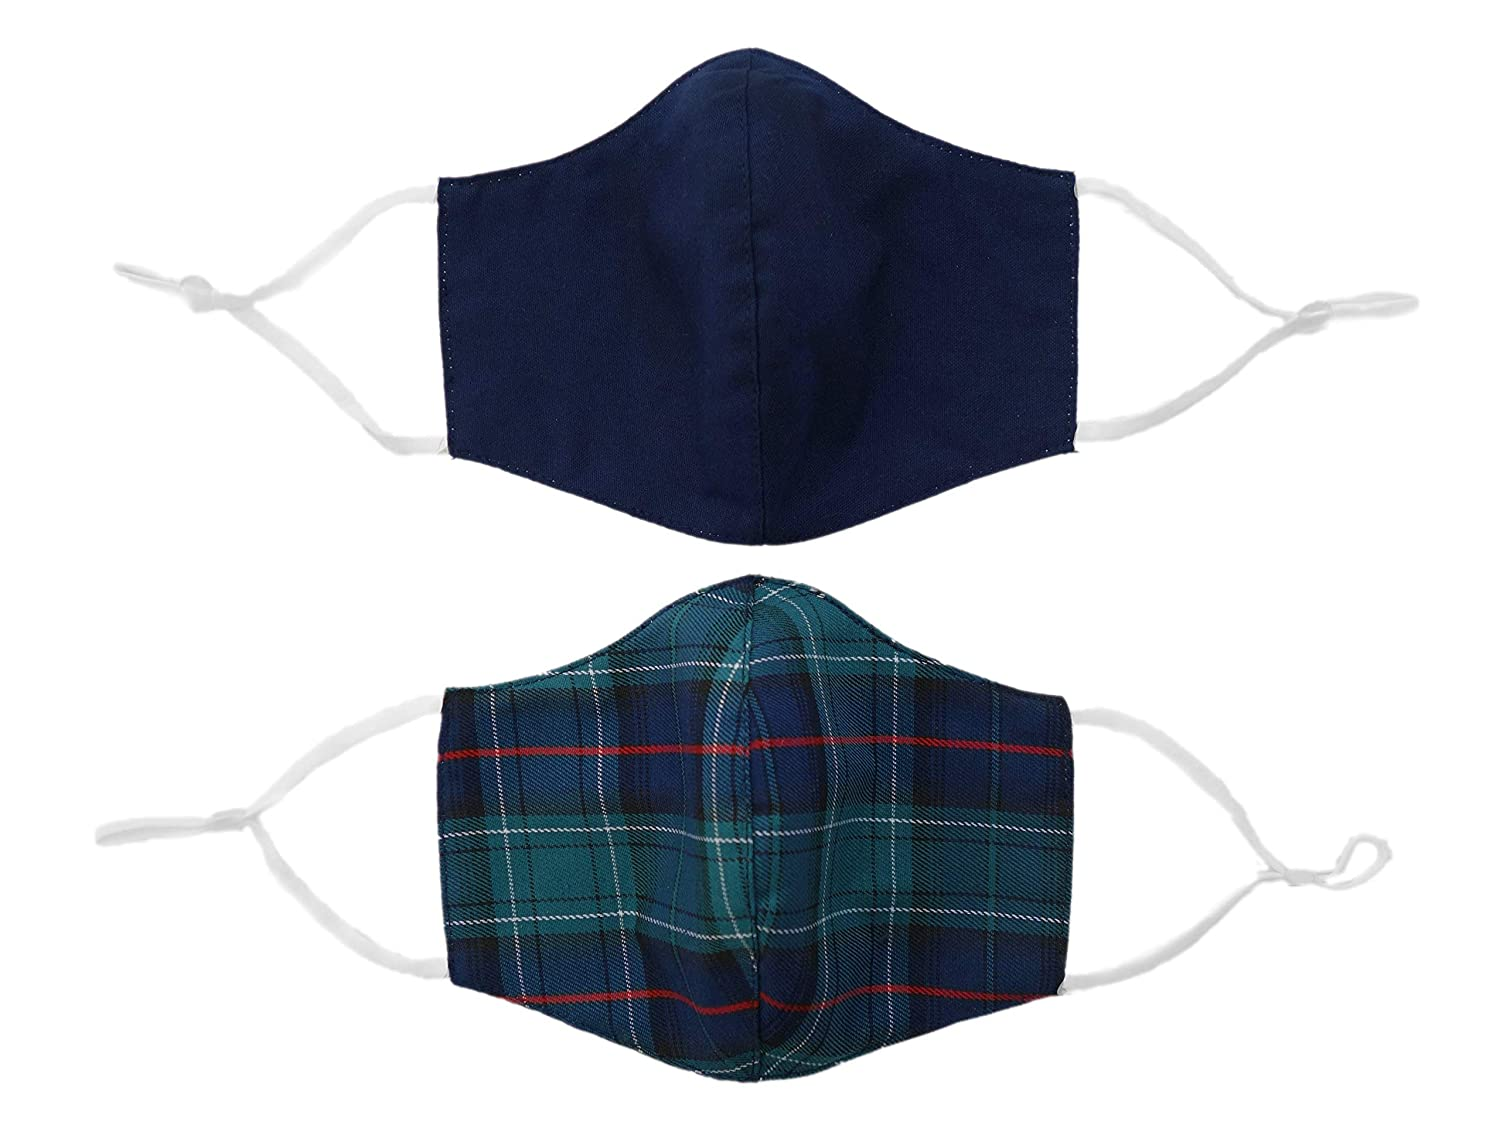 Tartan Plaid Easy-to-use Gingham Face Mask Designer with Facemasks Super beauty product restock quality top Reusable